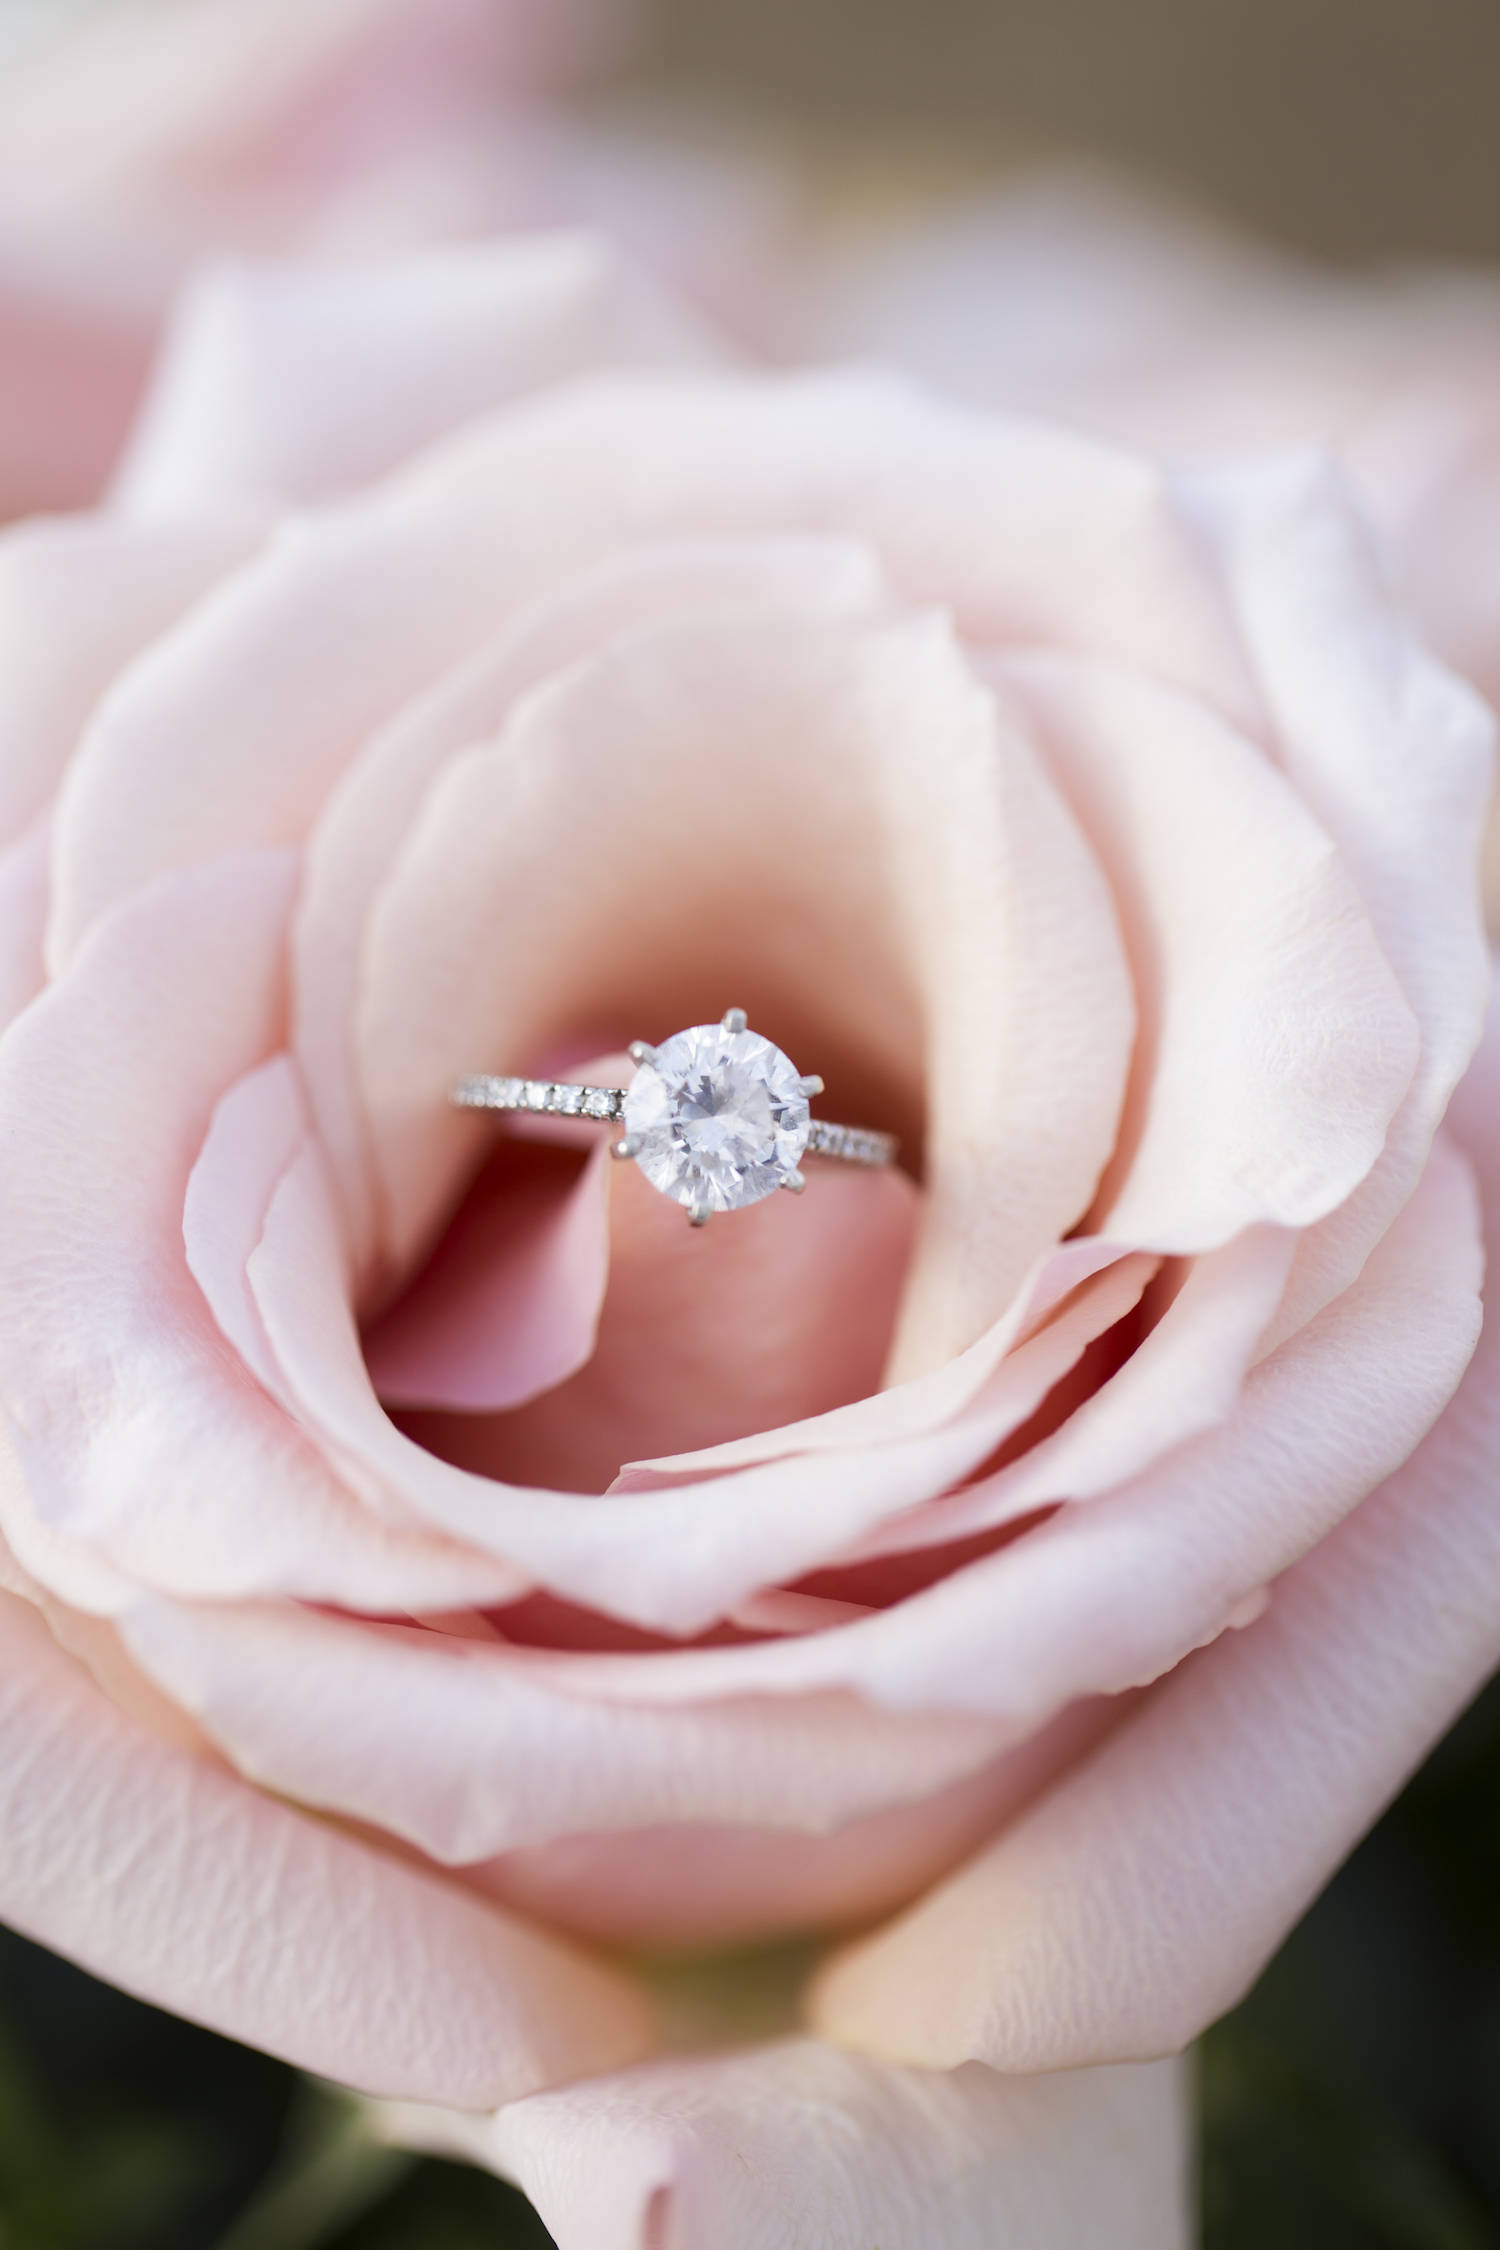 sleepy-hollow-styled-shoot-ring-on-rose.jpg